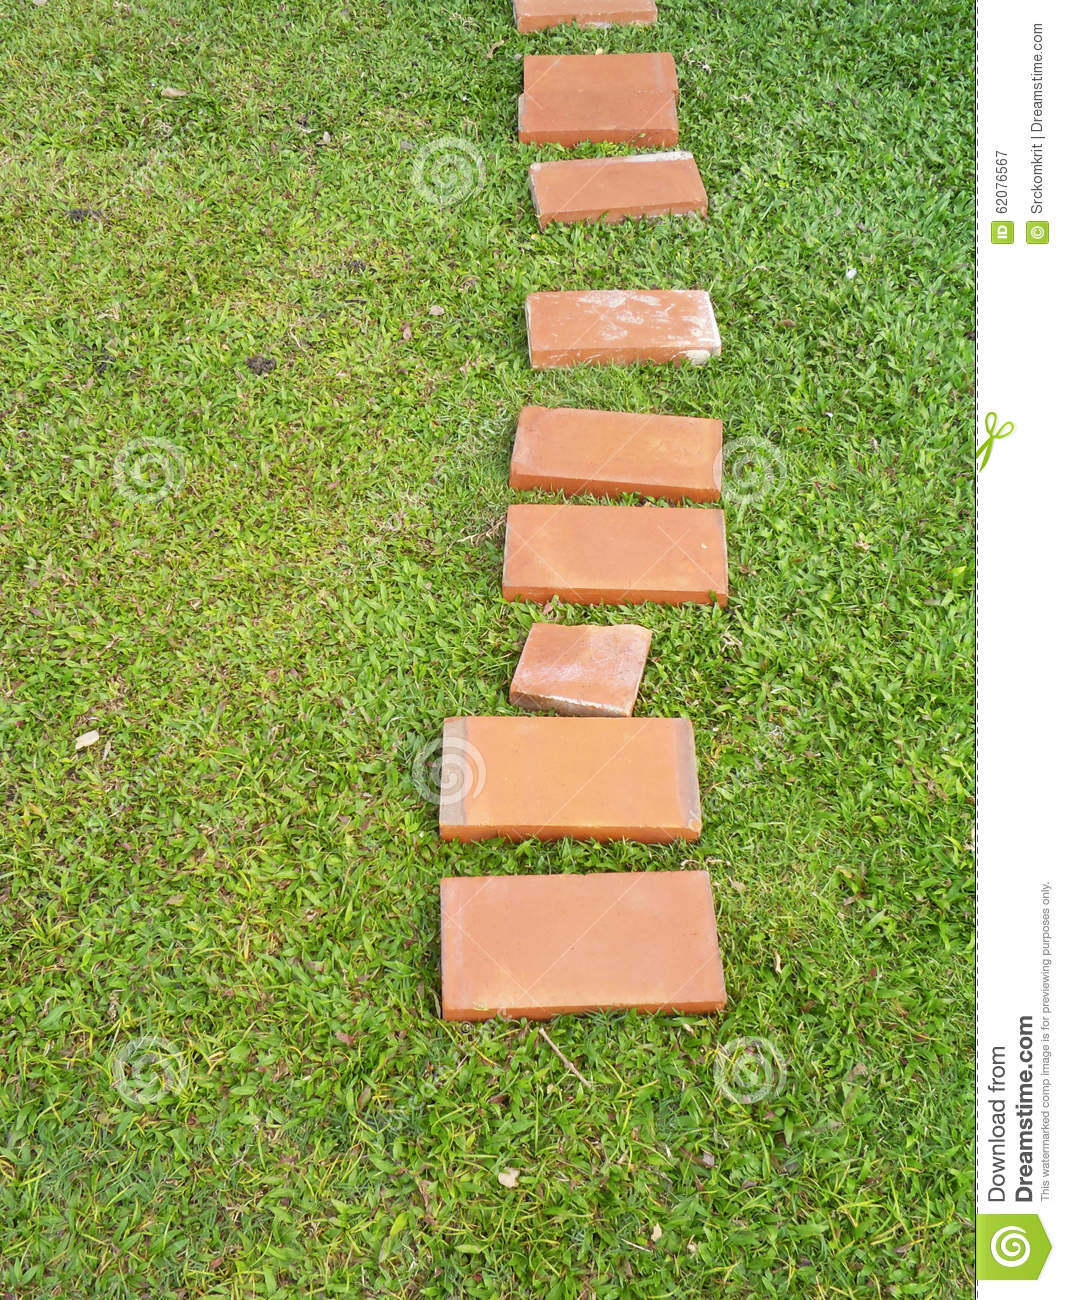 Download Top View Of Garden Pathway Stock Image. Image Of Design   62076567